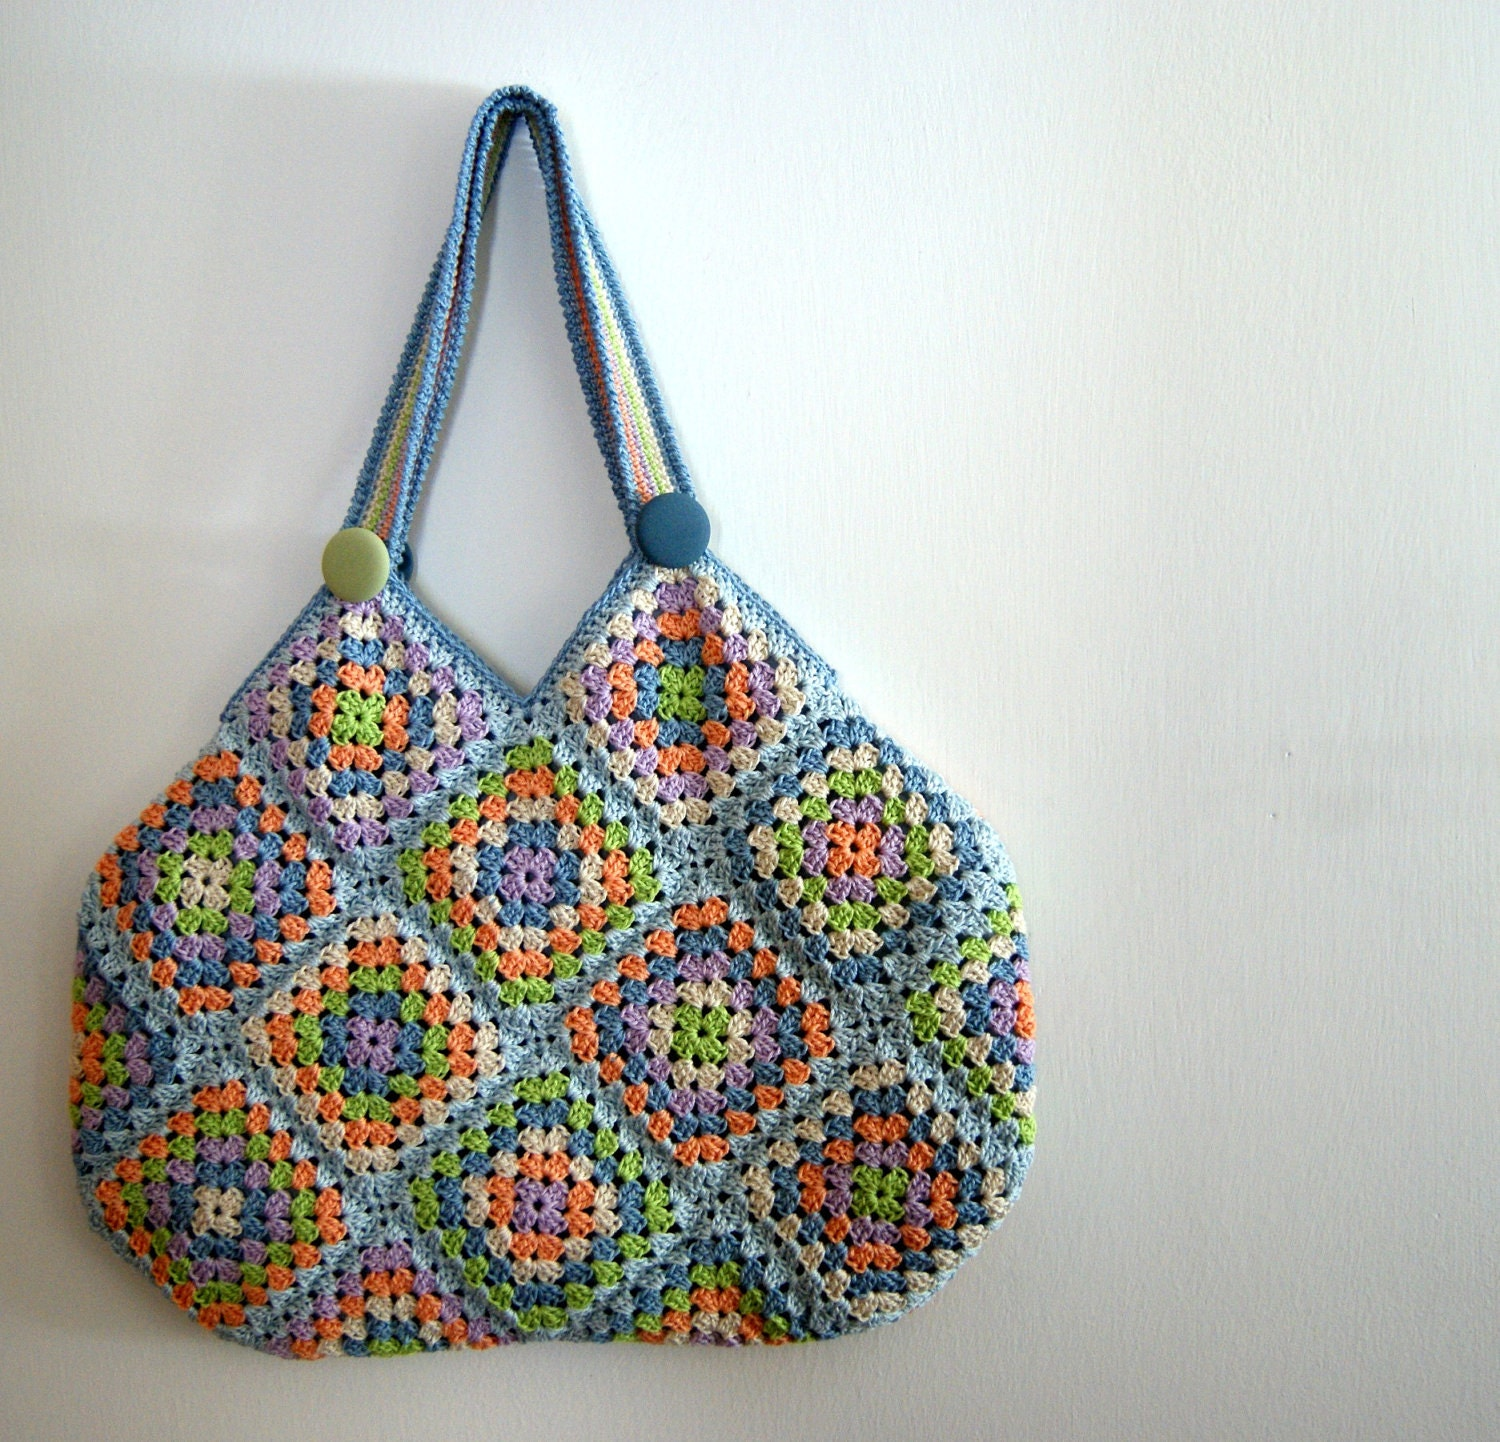 Crochet granny square bag by knittingcate on Etsy